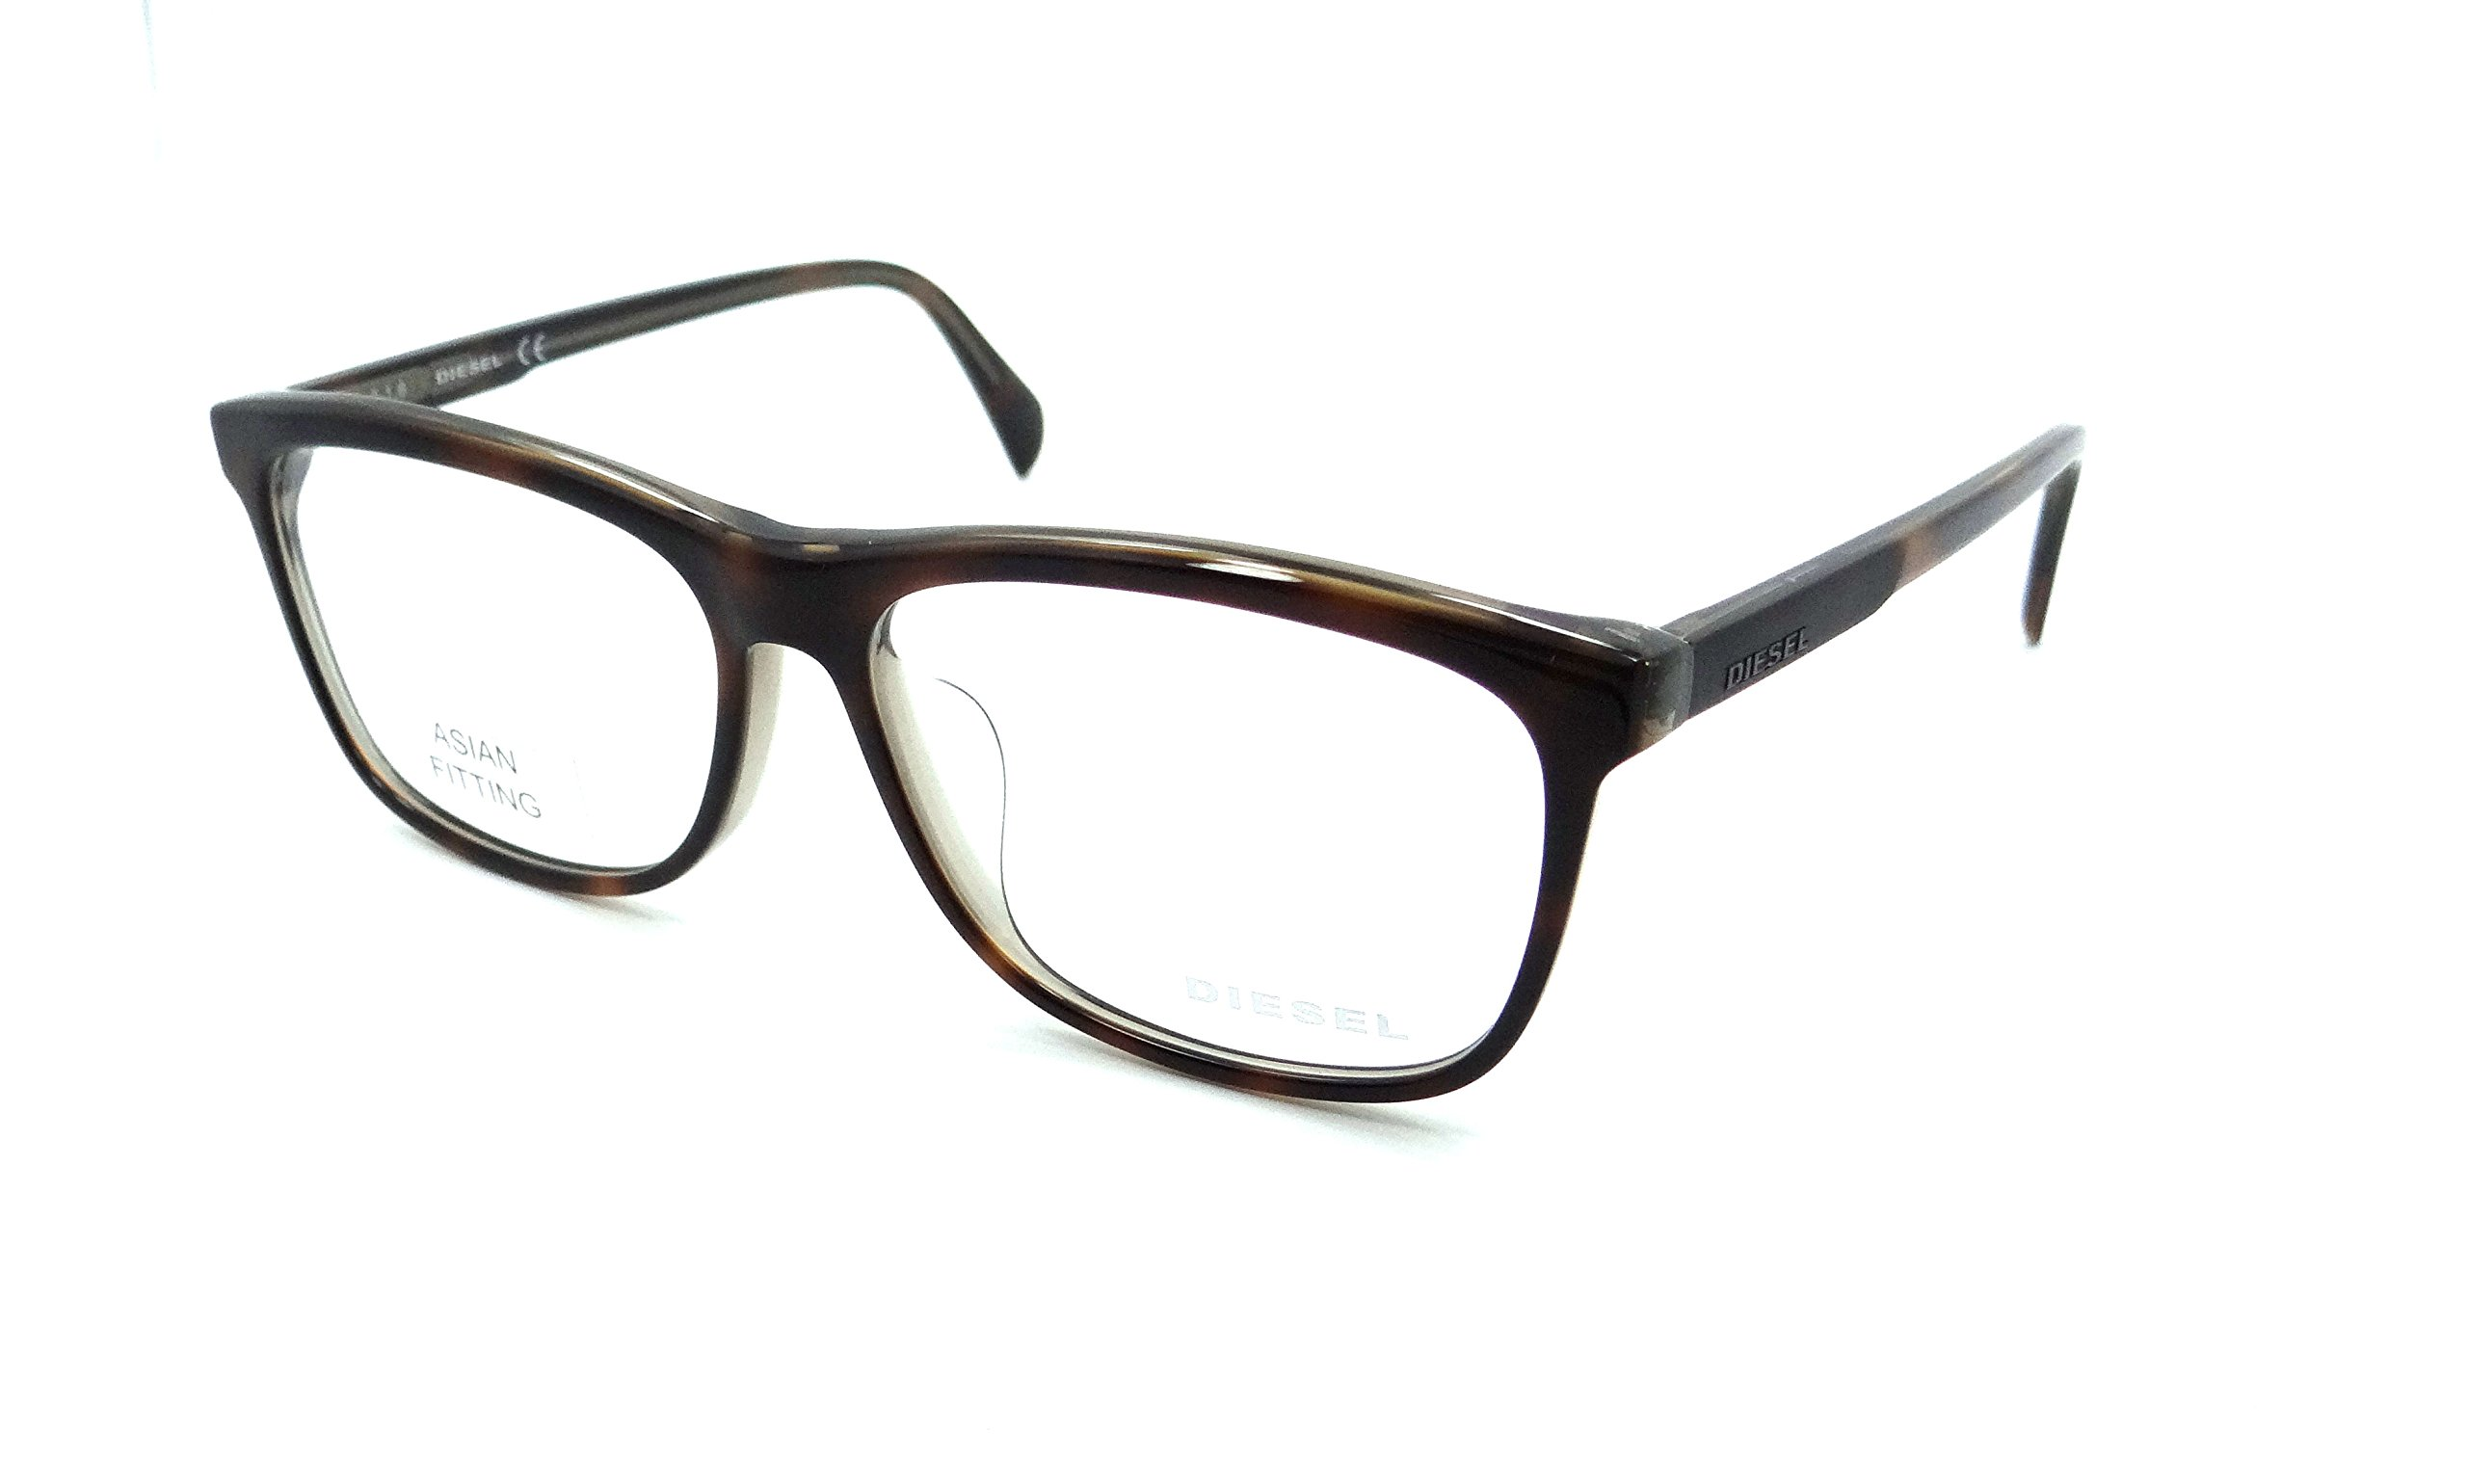 Diesel Rx Eyeglasses Frames DL5183-F 056 57-14-145 Havana Asian Fit by Diesel (Image #1)